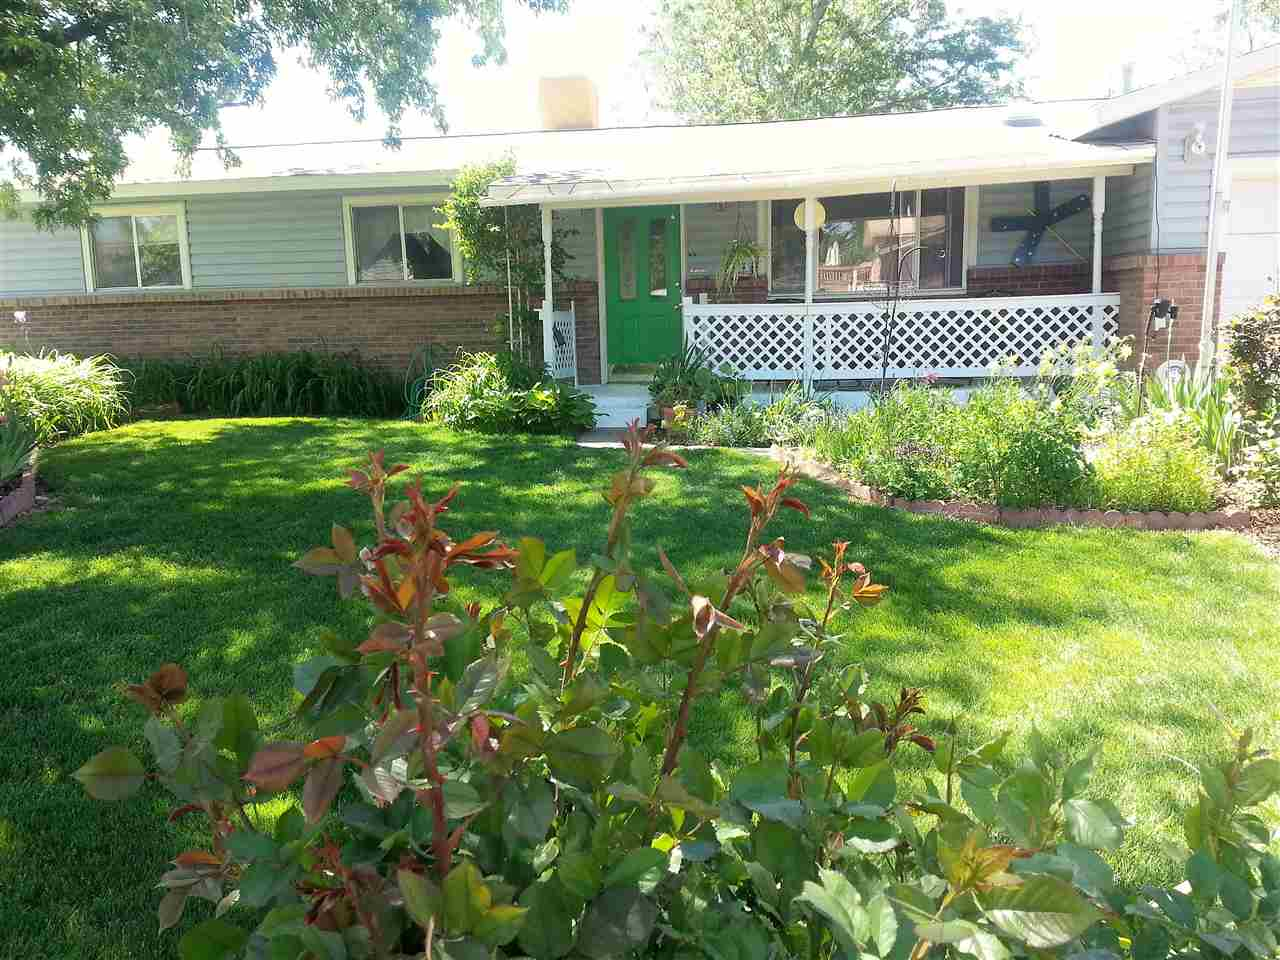 2893 F 1/4 Road, Grand Junction, CO 81506